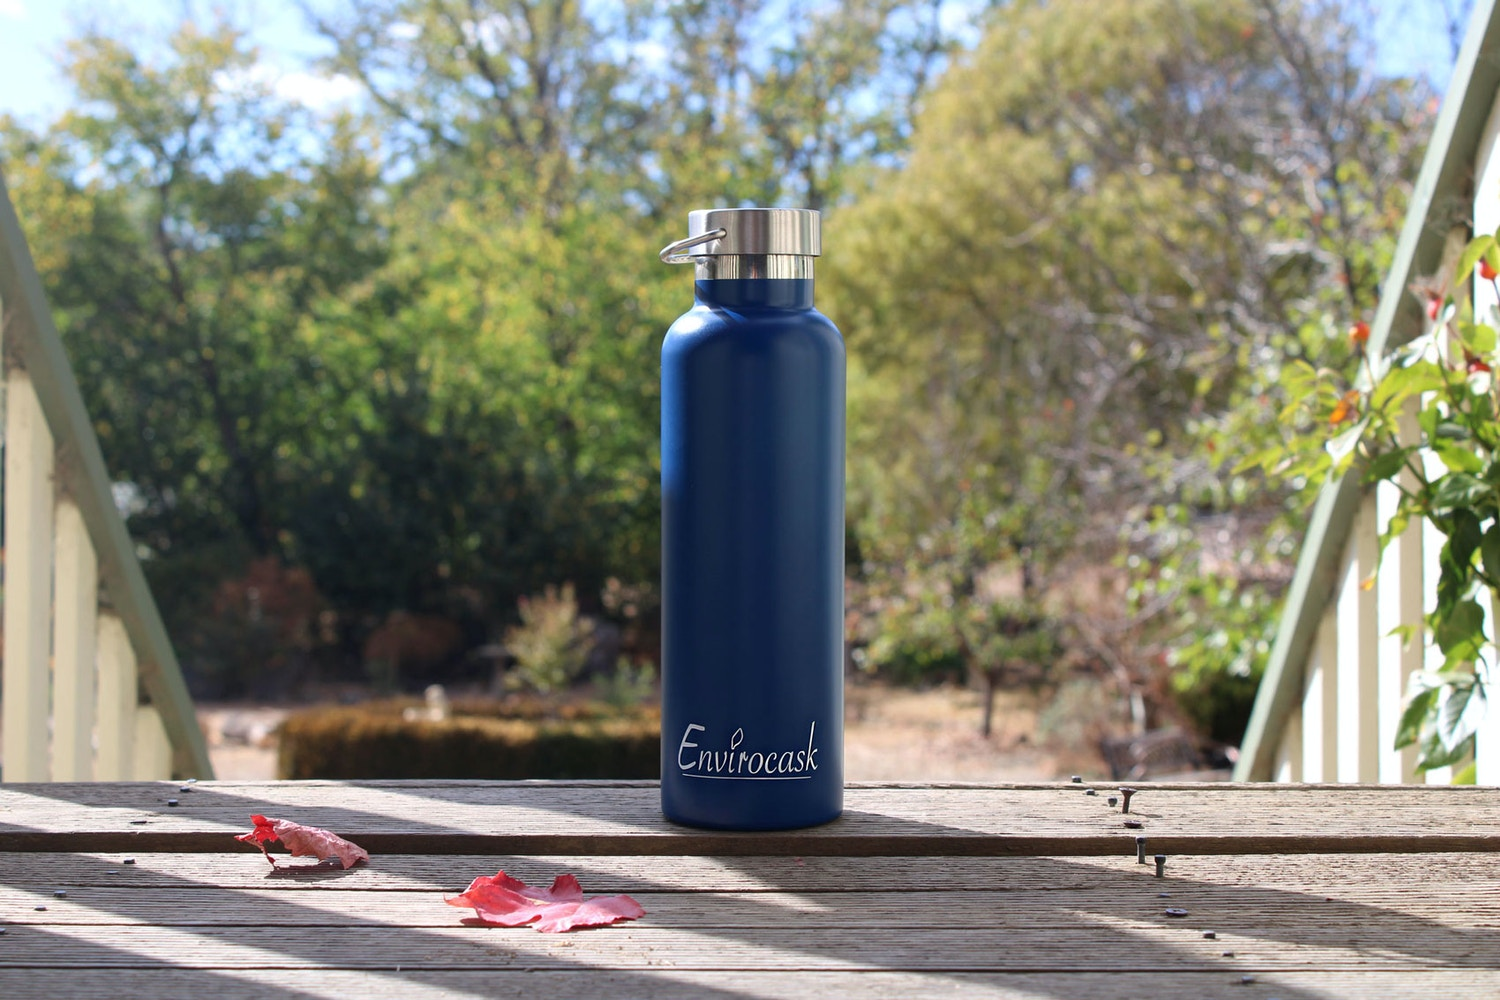 Five Minutes with Envirocask